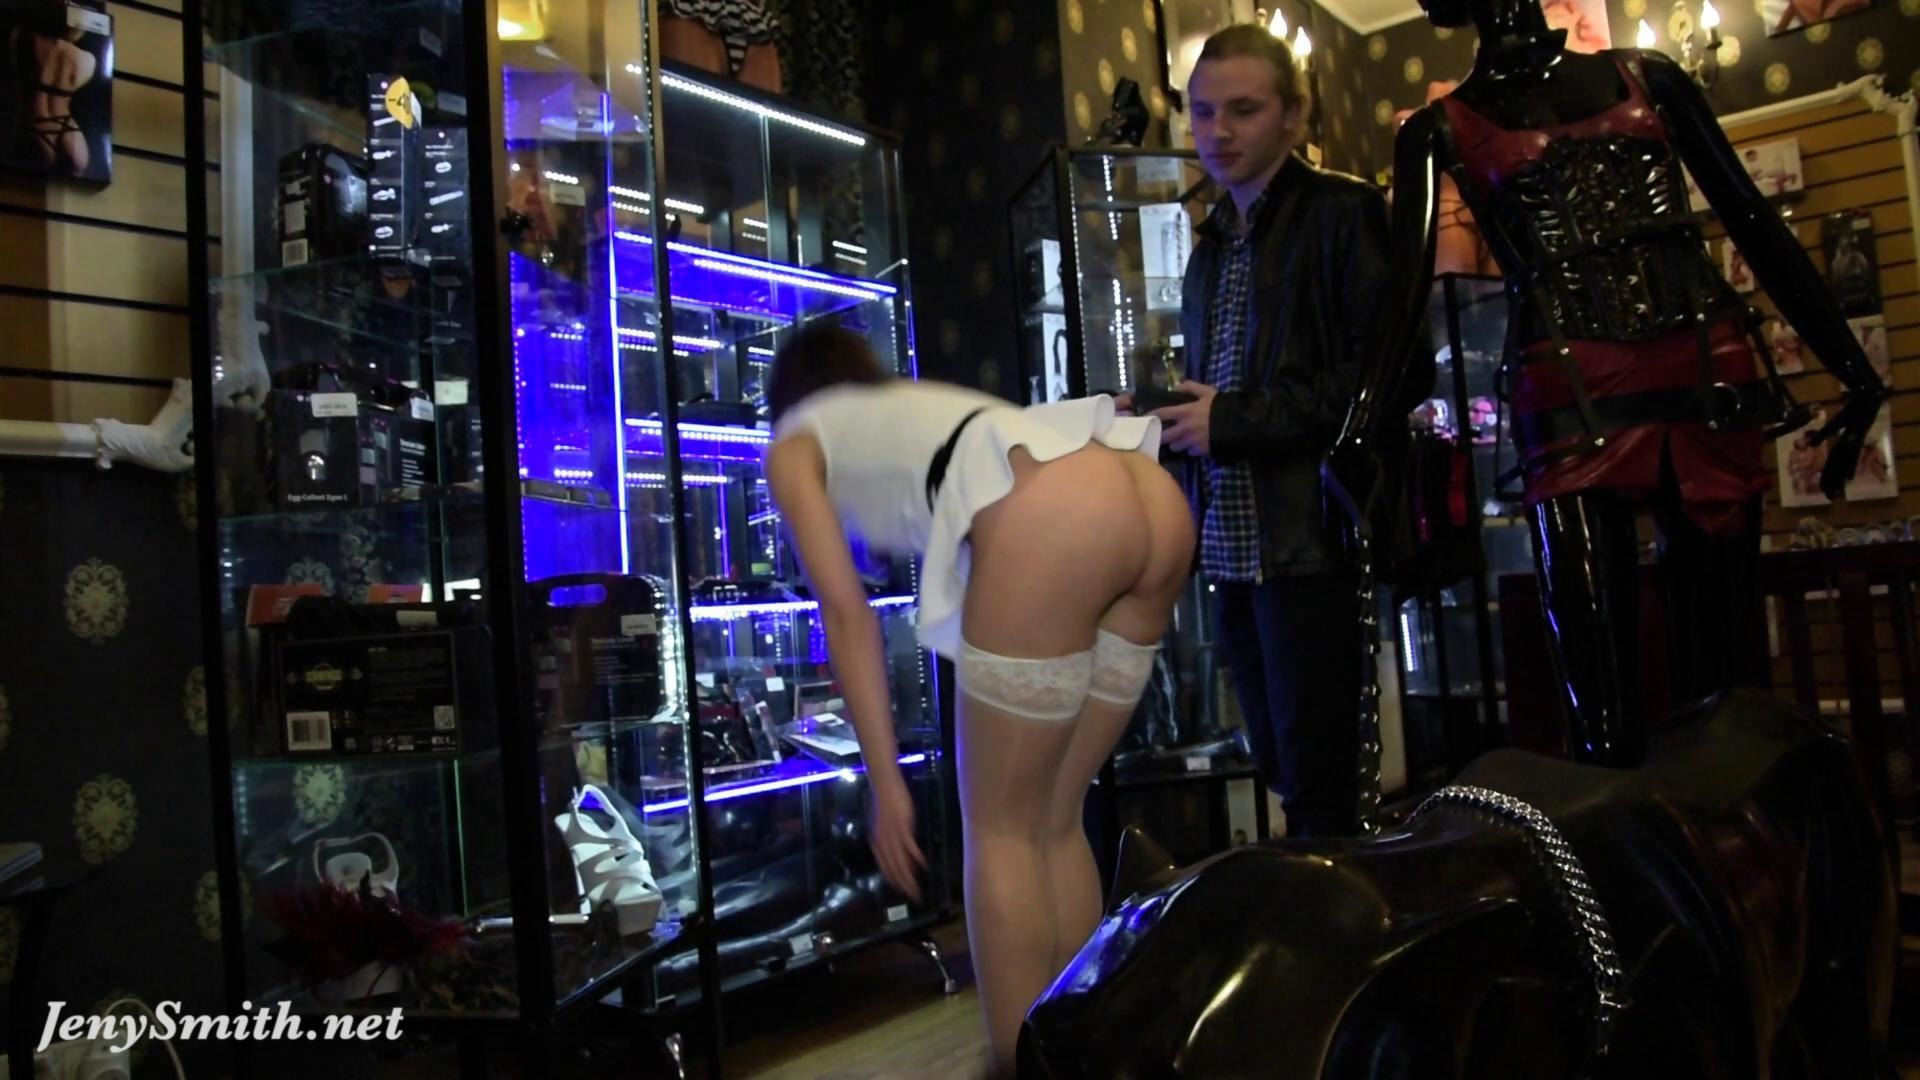 Jeny smith naked sales girl meet customers in a sex shop - 1 part 9